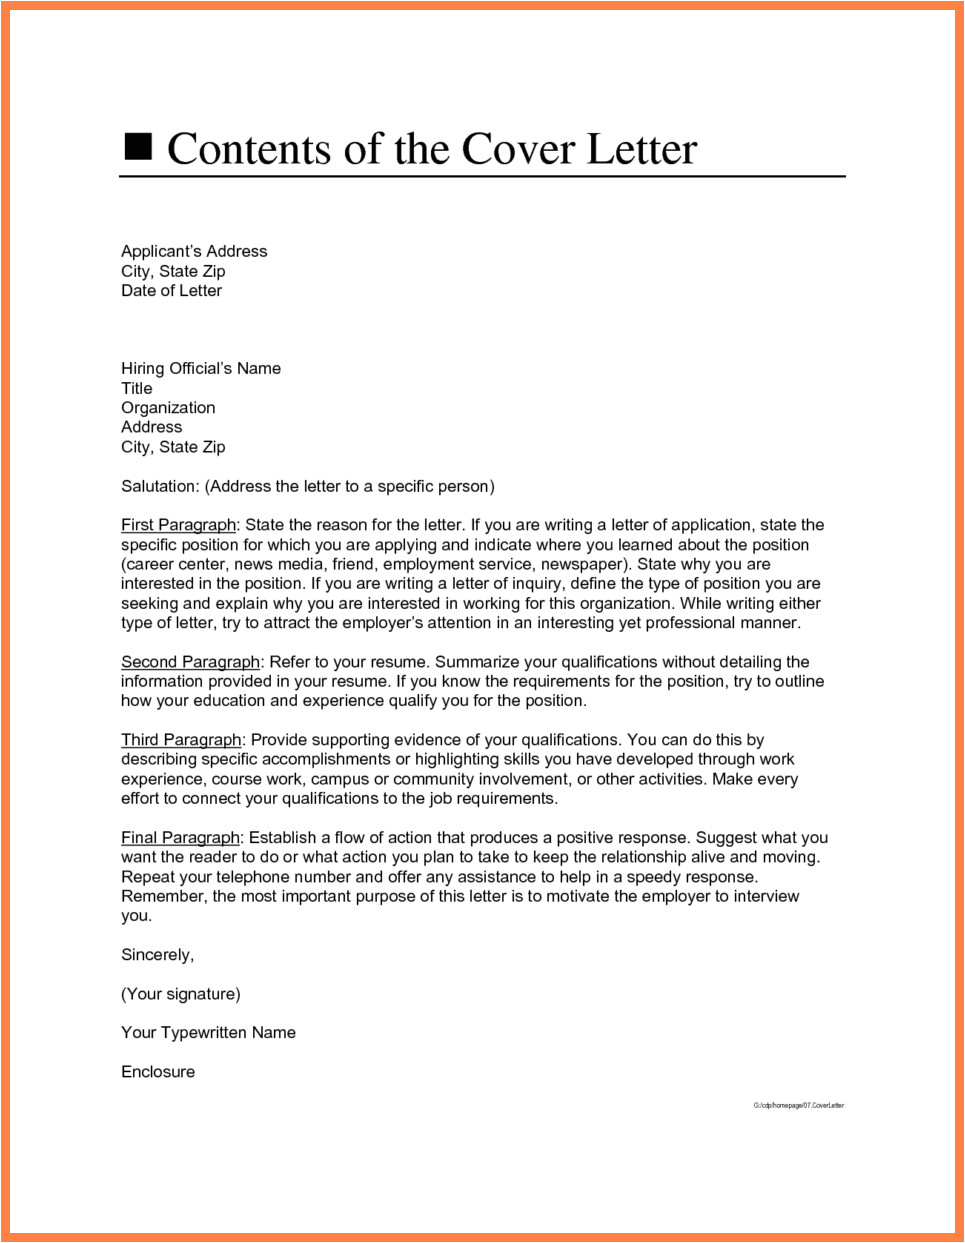 How to Address In Cover Letter with No Name 5 Cover Letter Address Marital Settlements Information